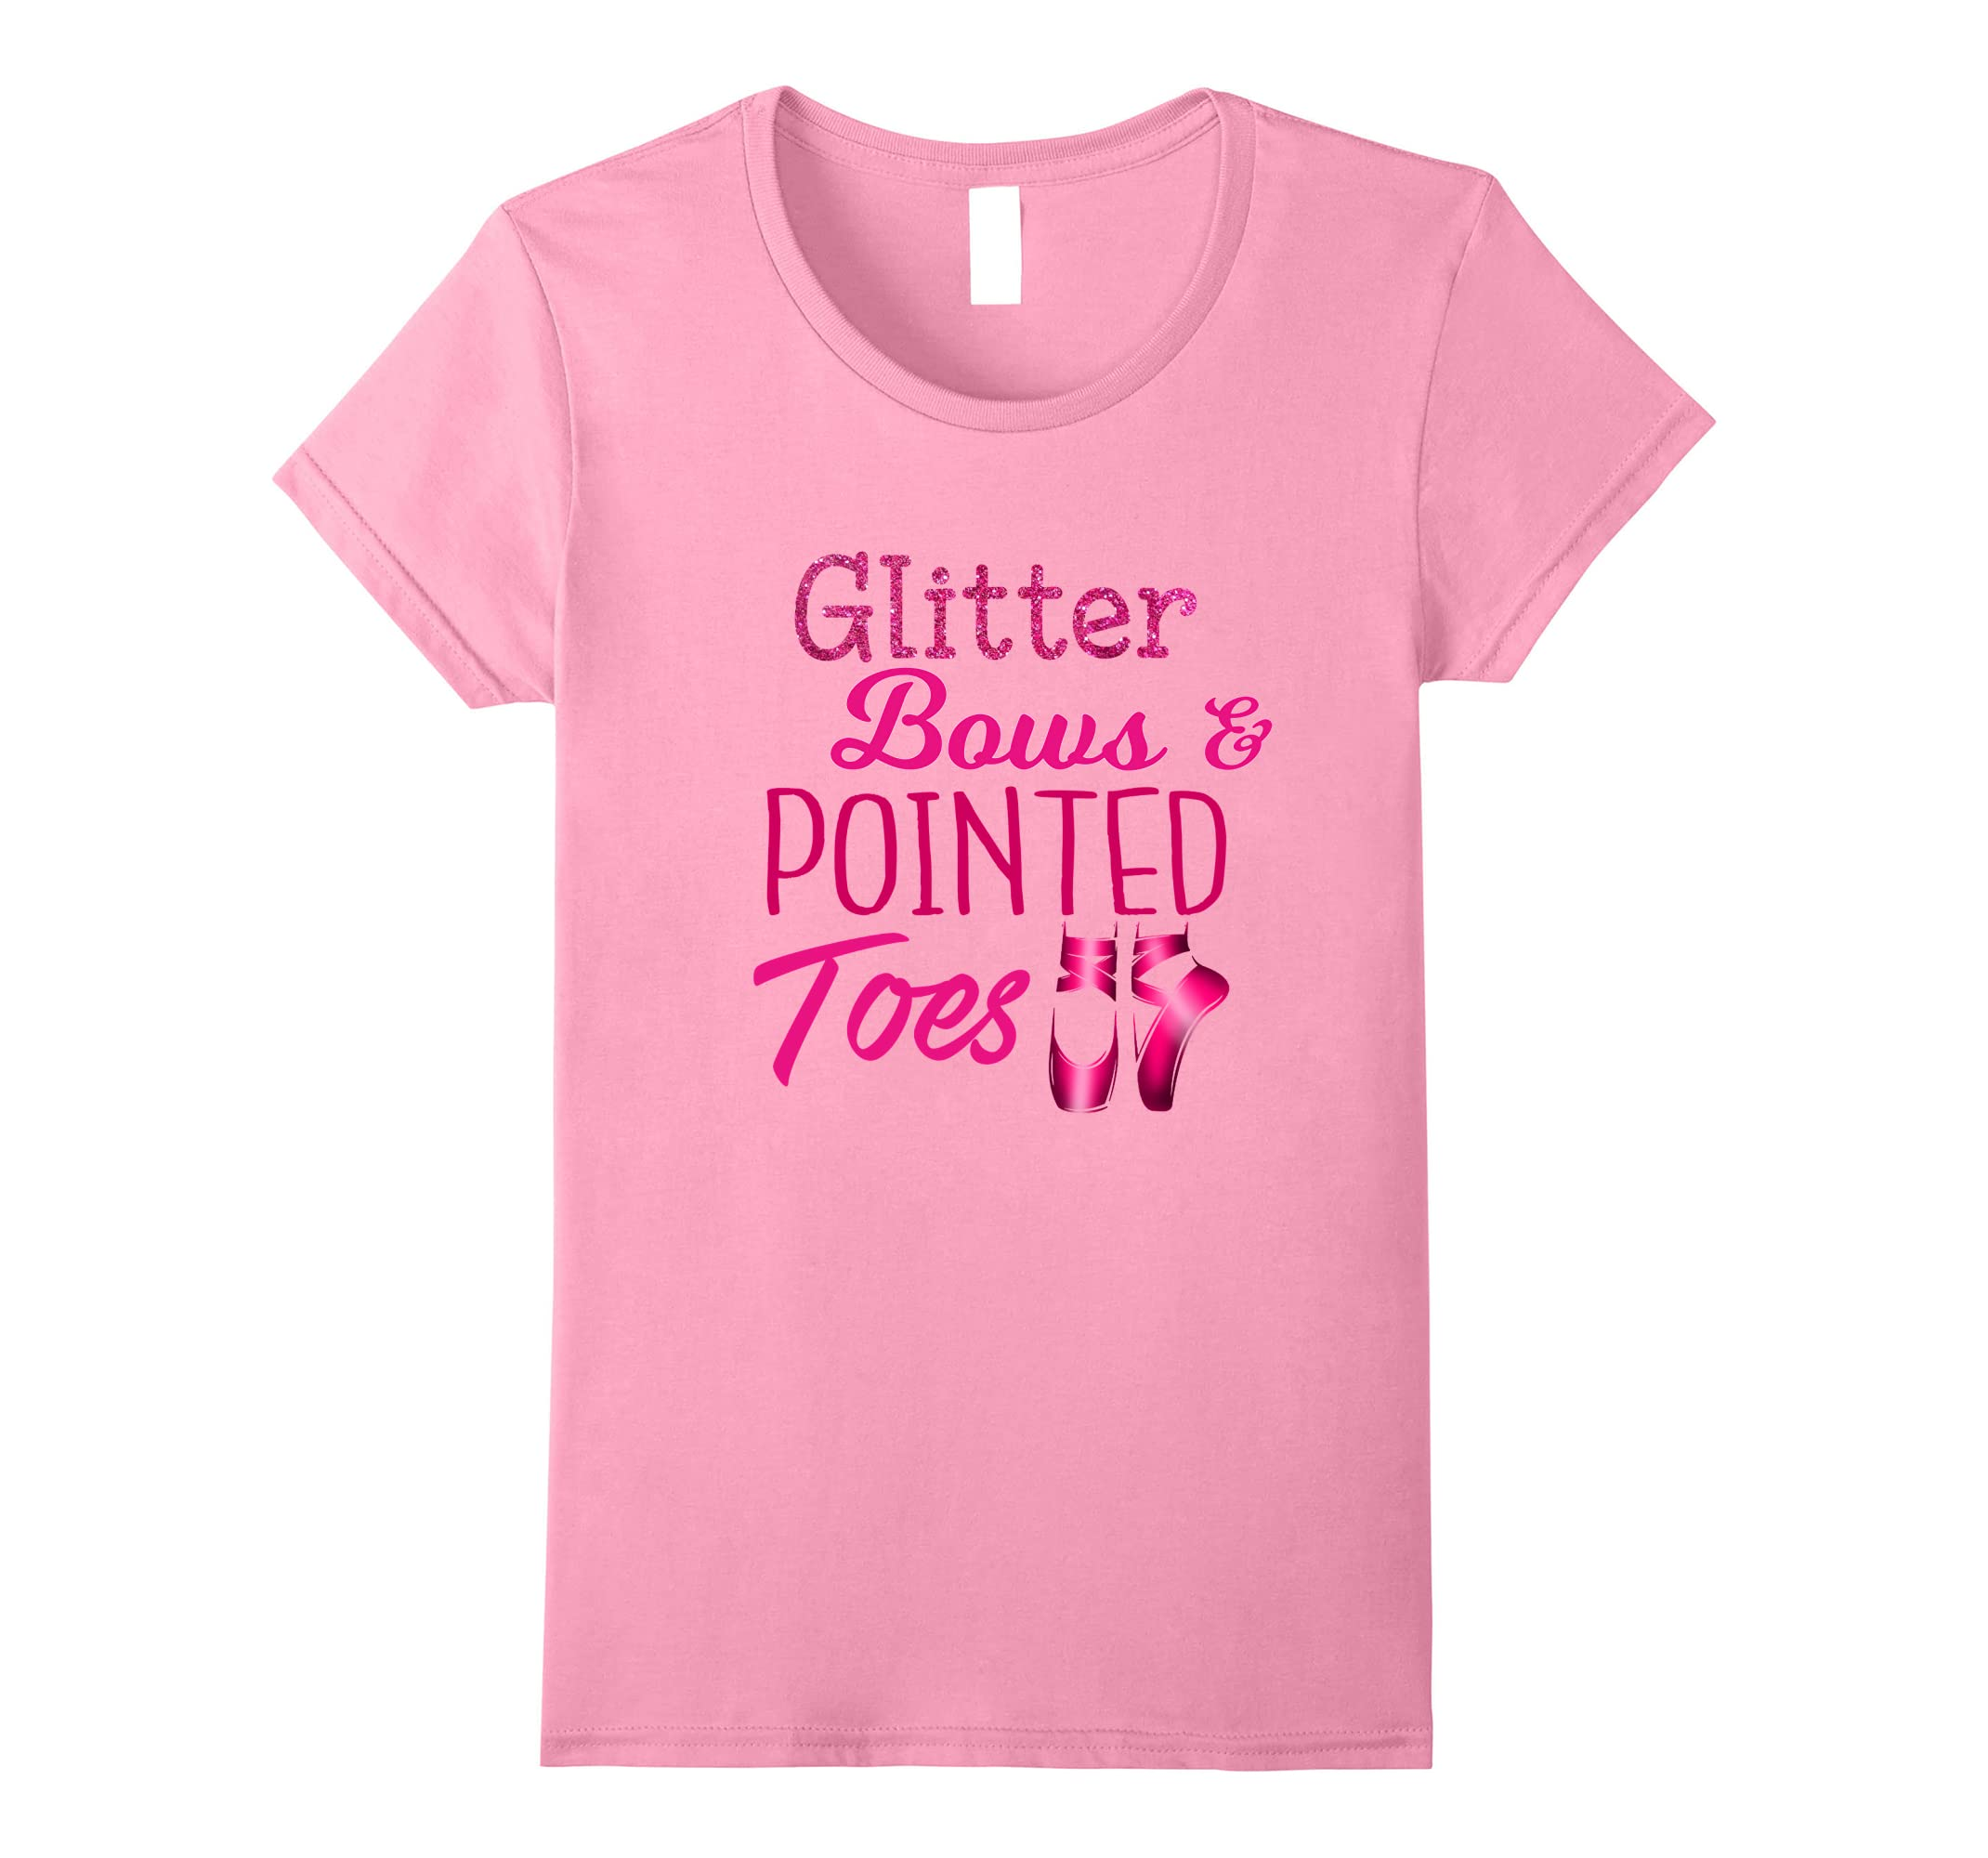 e803809b2d1d Amazon.com: Glitter Bows Pointed Toes Funny Cheer Dance Ballet Shirt:  Clothing